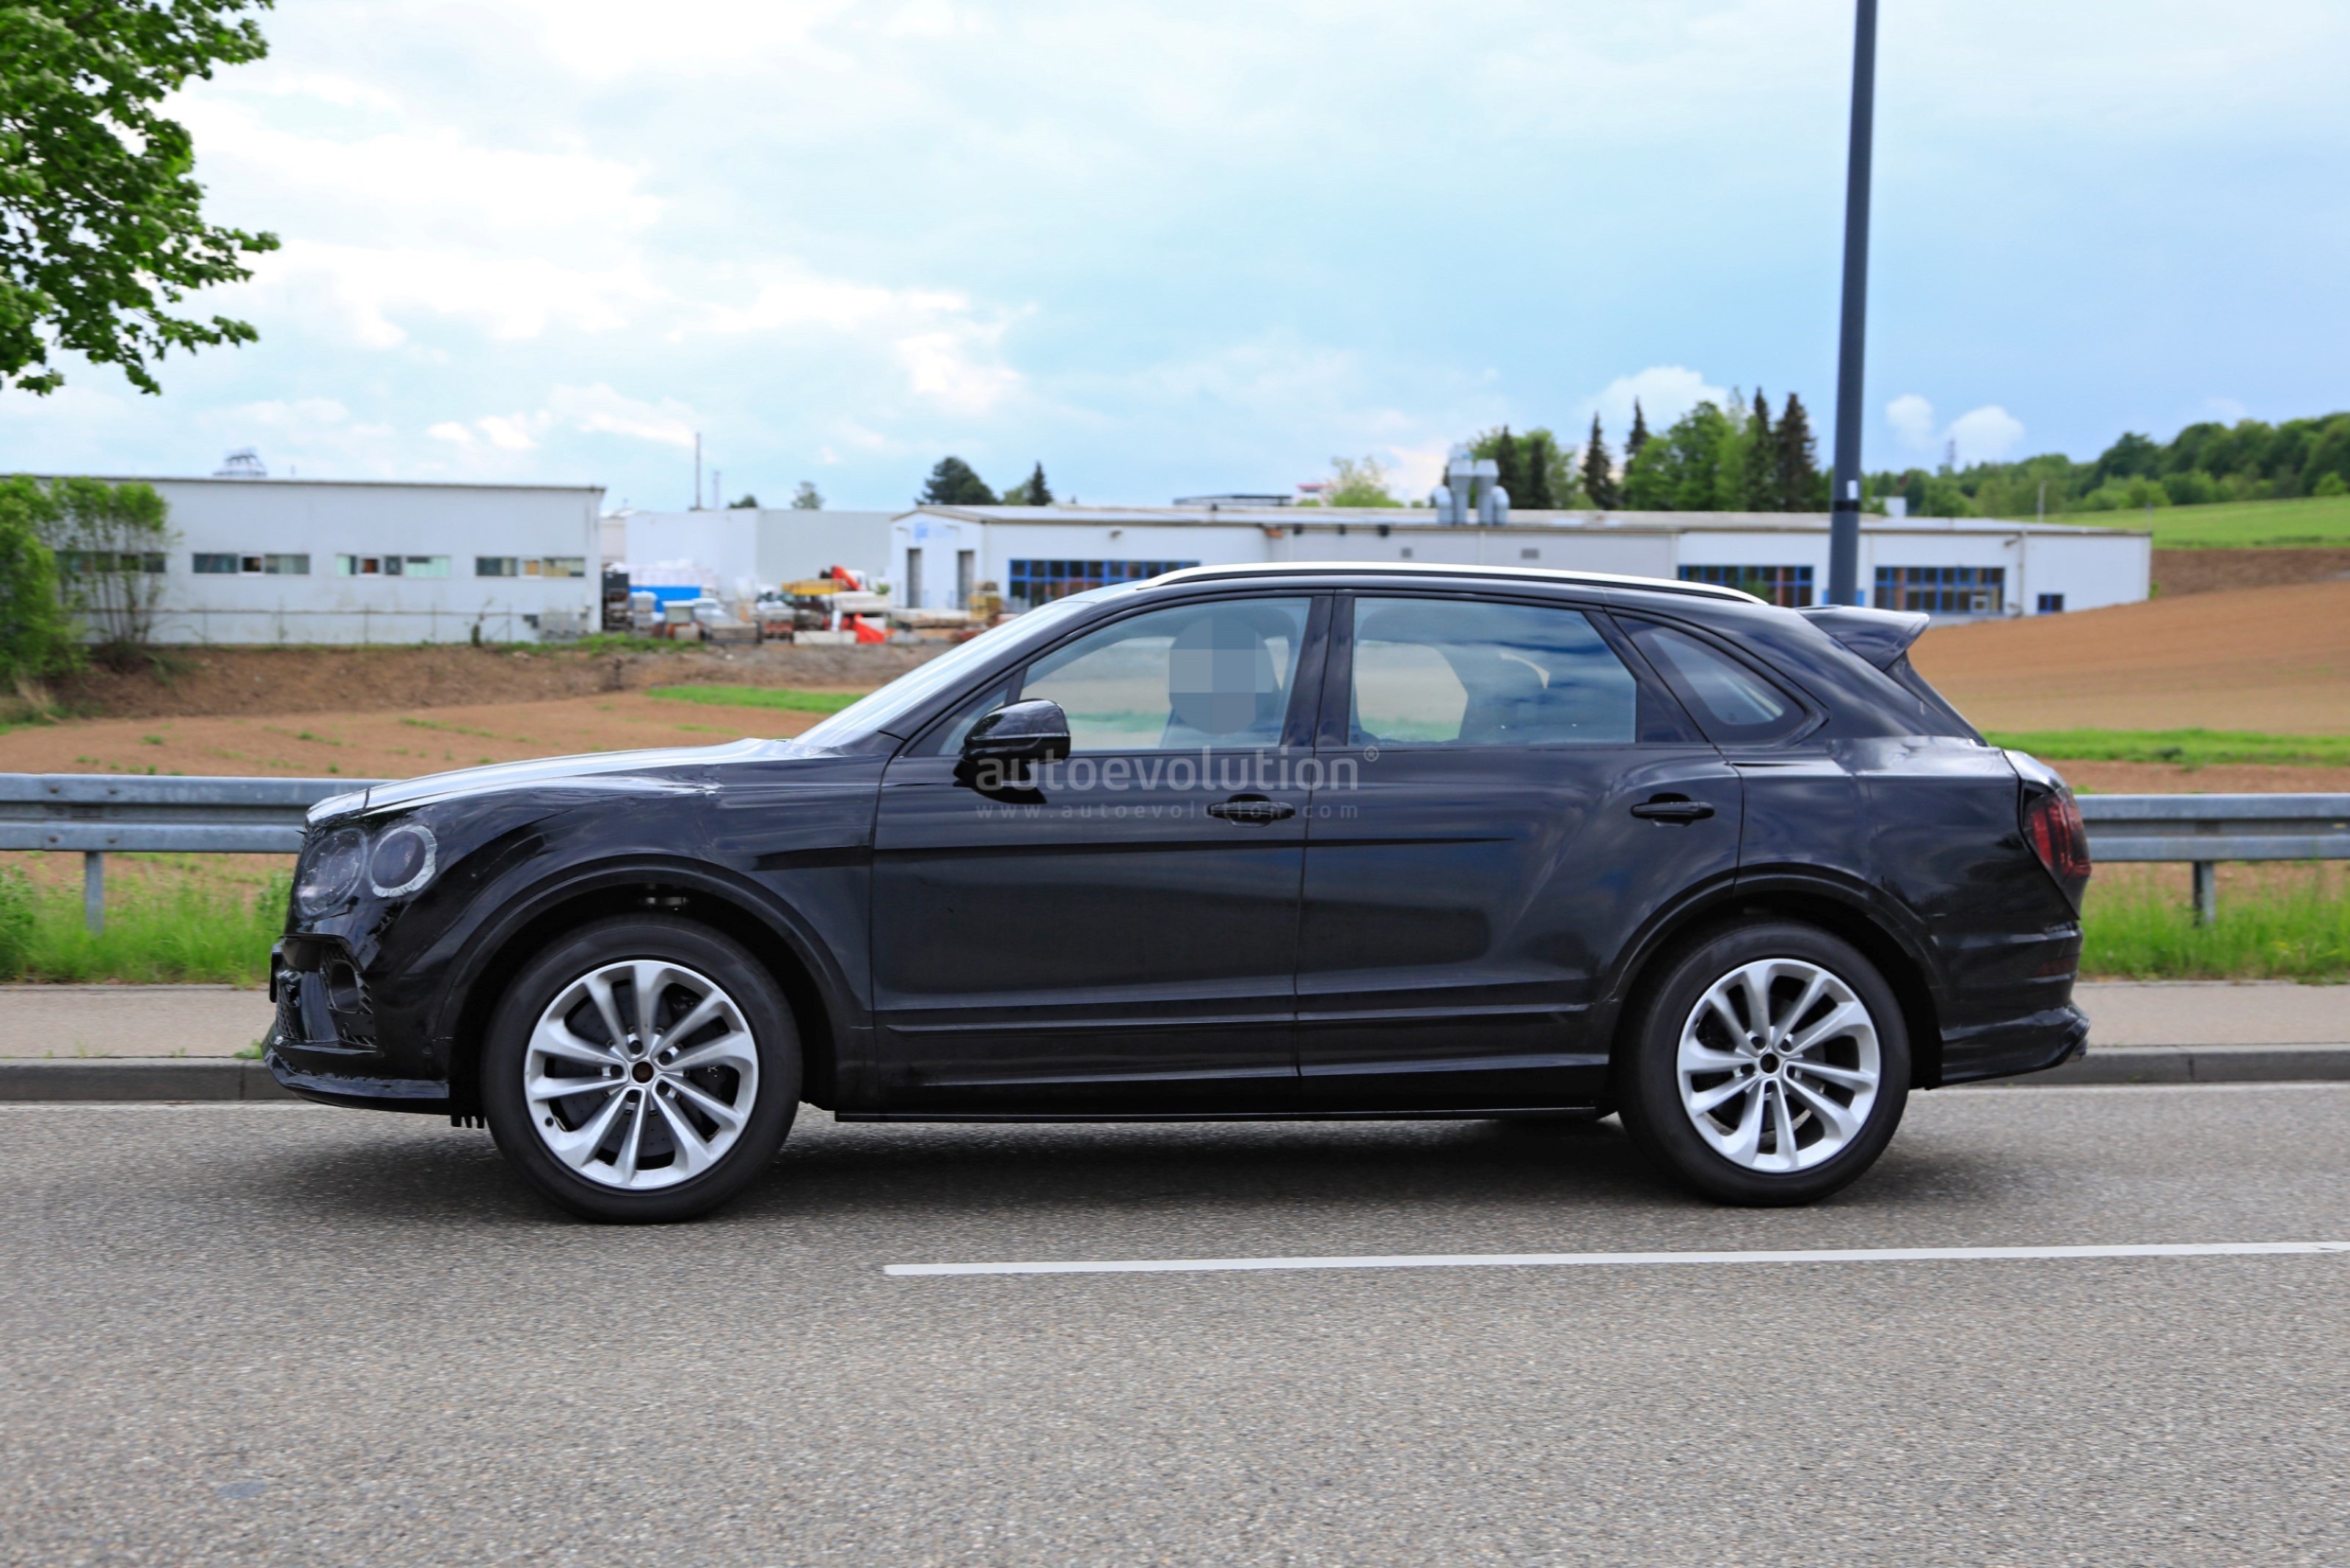 2021 Bentley Bentayga Facelift Leaked New Infotainment Looks Poorly Integrated Autoevolution